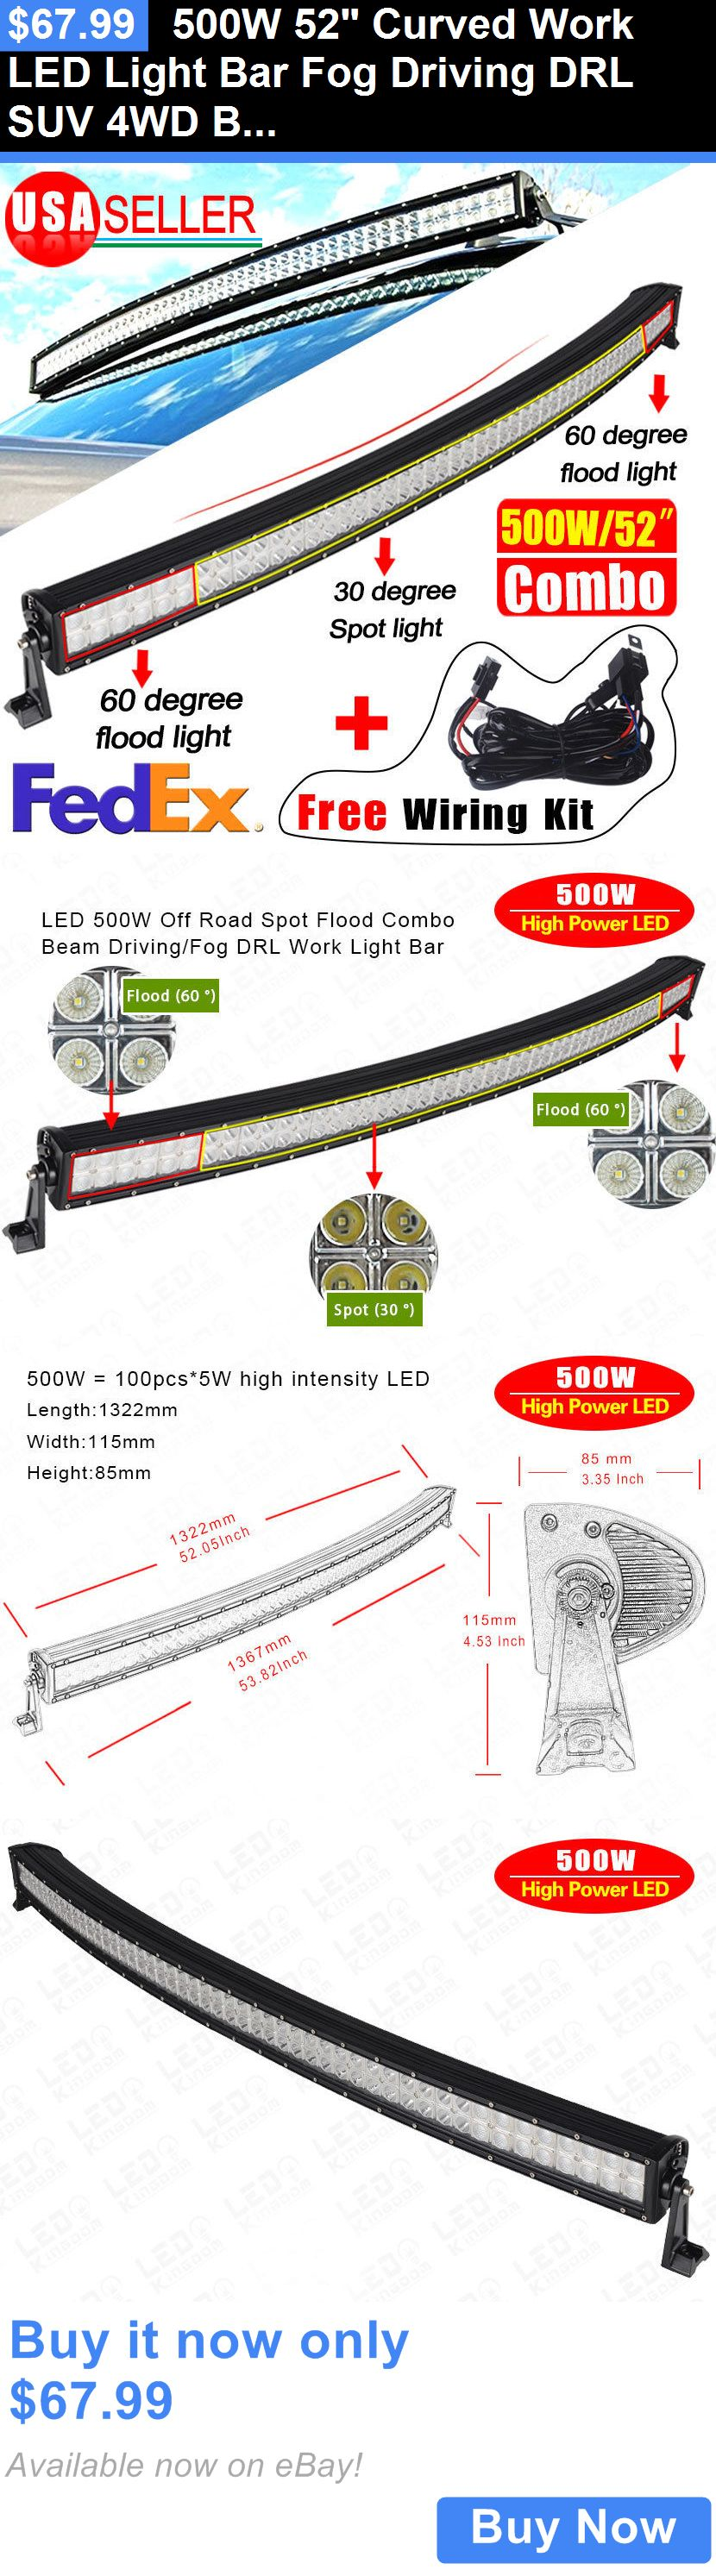 Motors Parts And Accessories 500w 52 Curved Work Led Light Bar Fog Curving Wiring Diagram For Use Driving Drl Suv